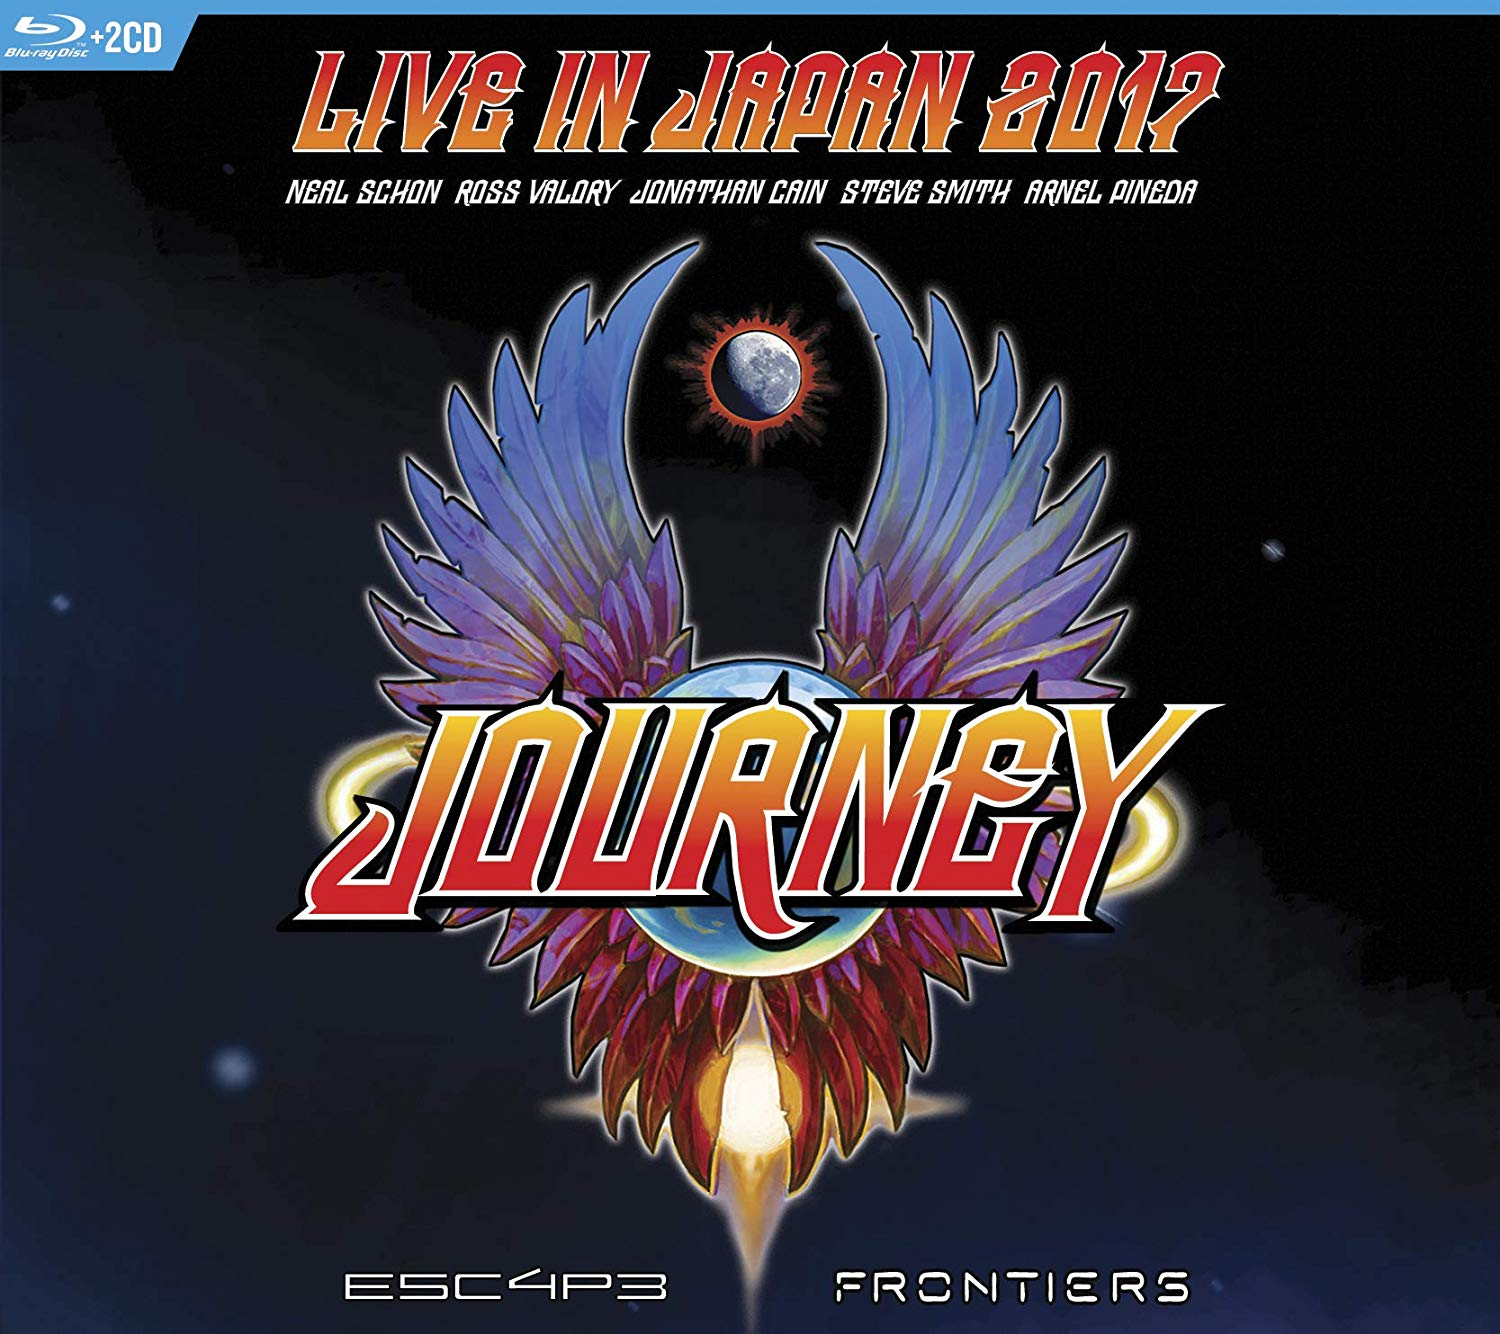 CD Shop - JOURNEY ESCAPE & FRONTIERS LIVE IN